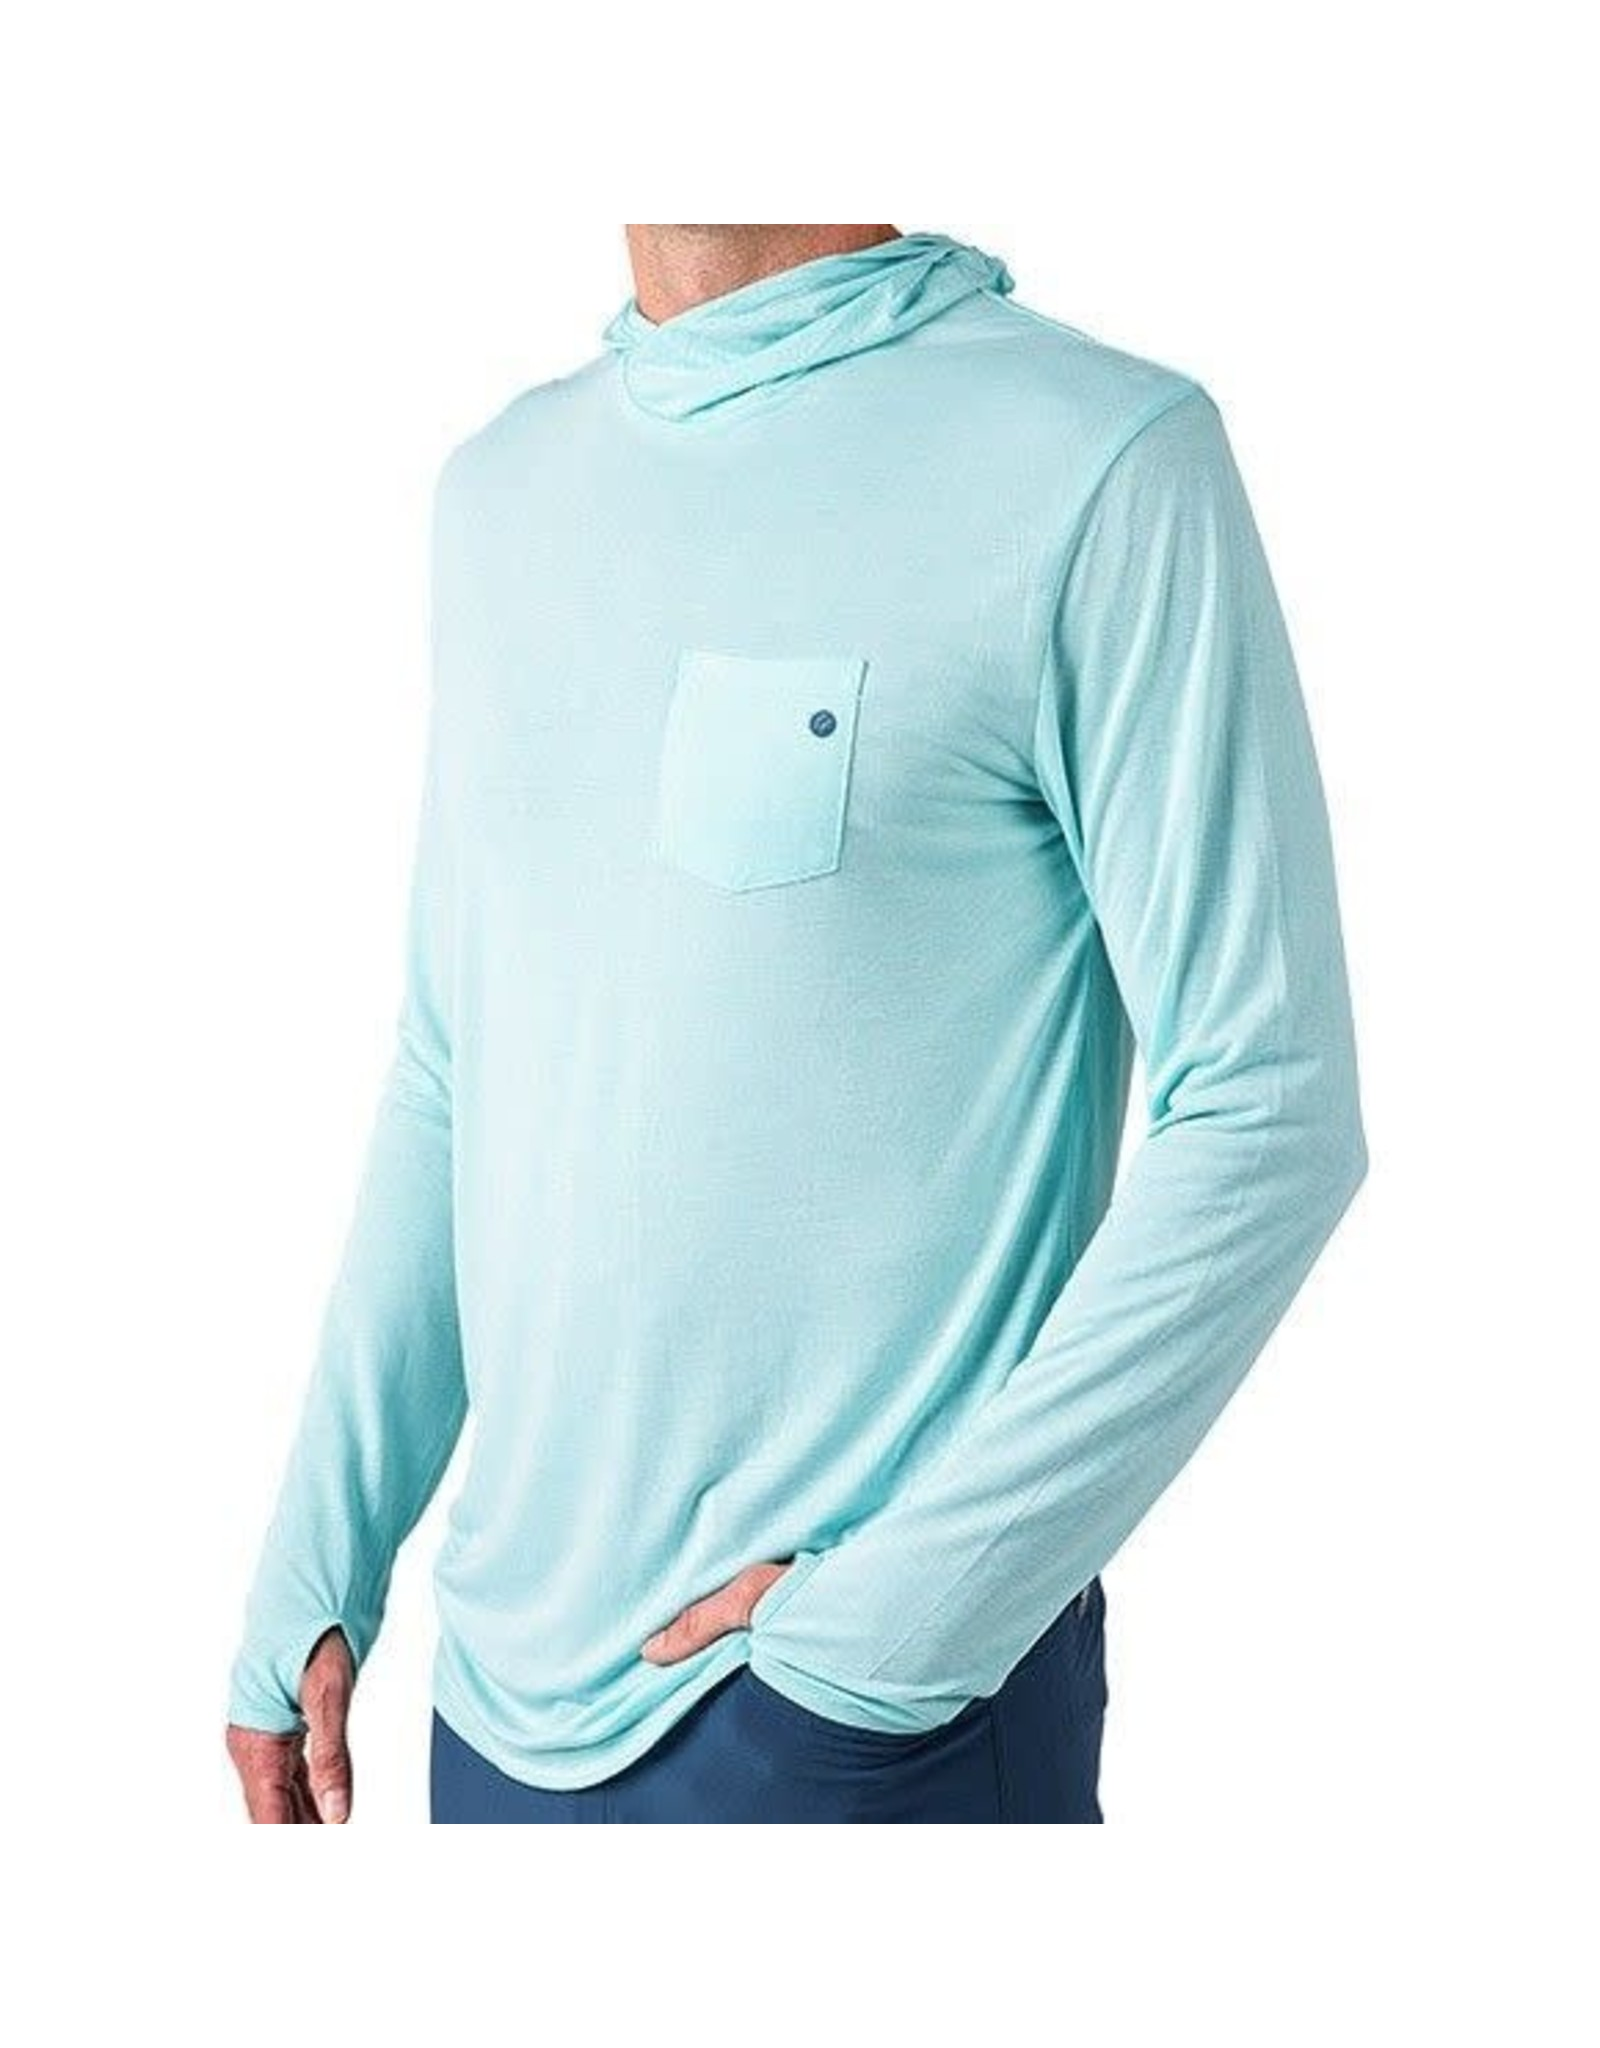 Free Fly Apparel Men's Free Fly Bamboo LightWeight Hoody